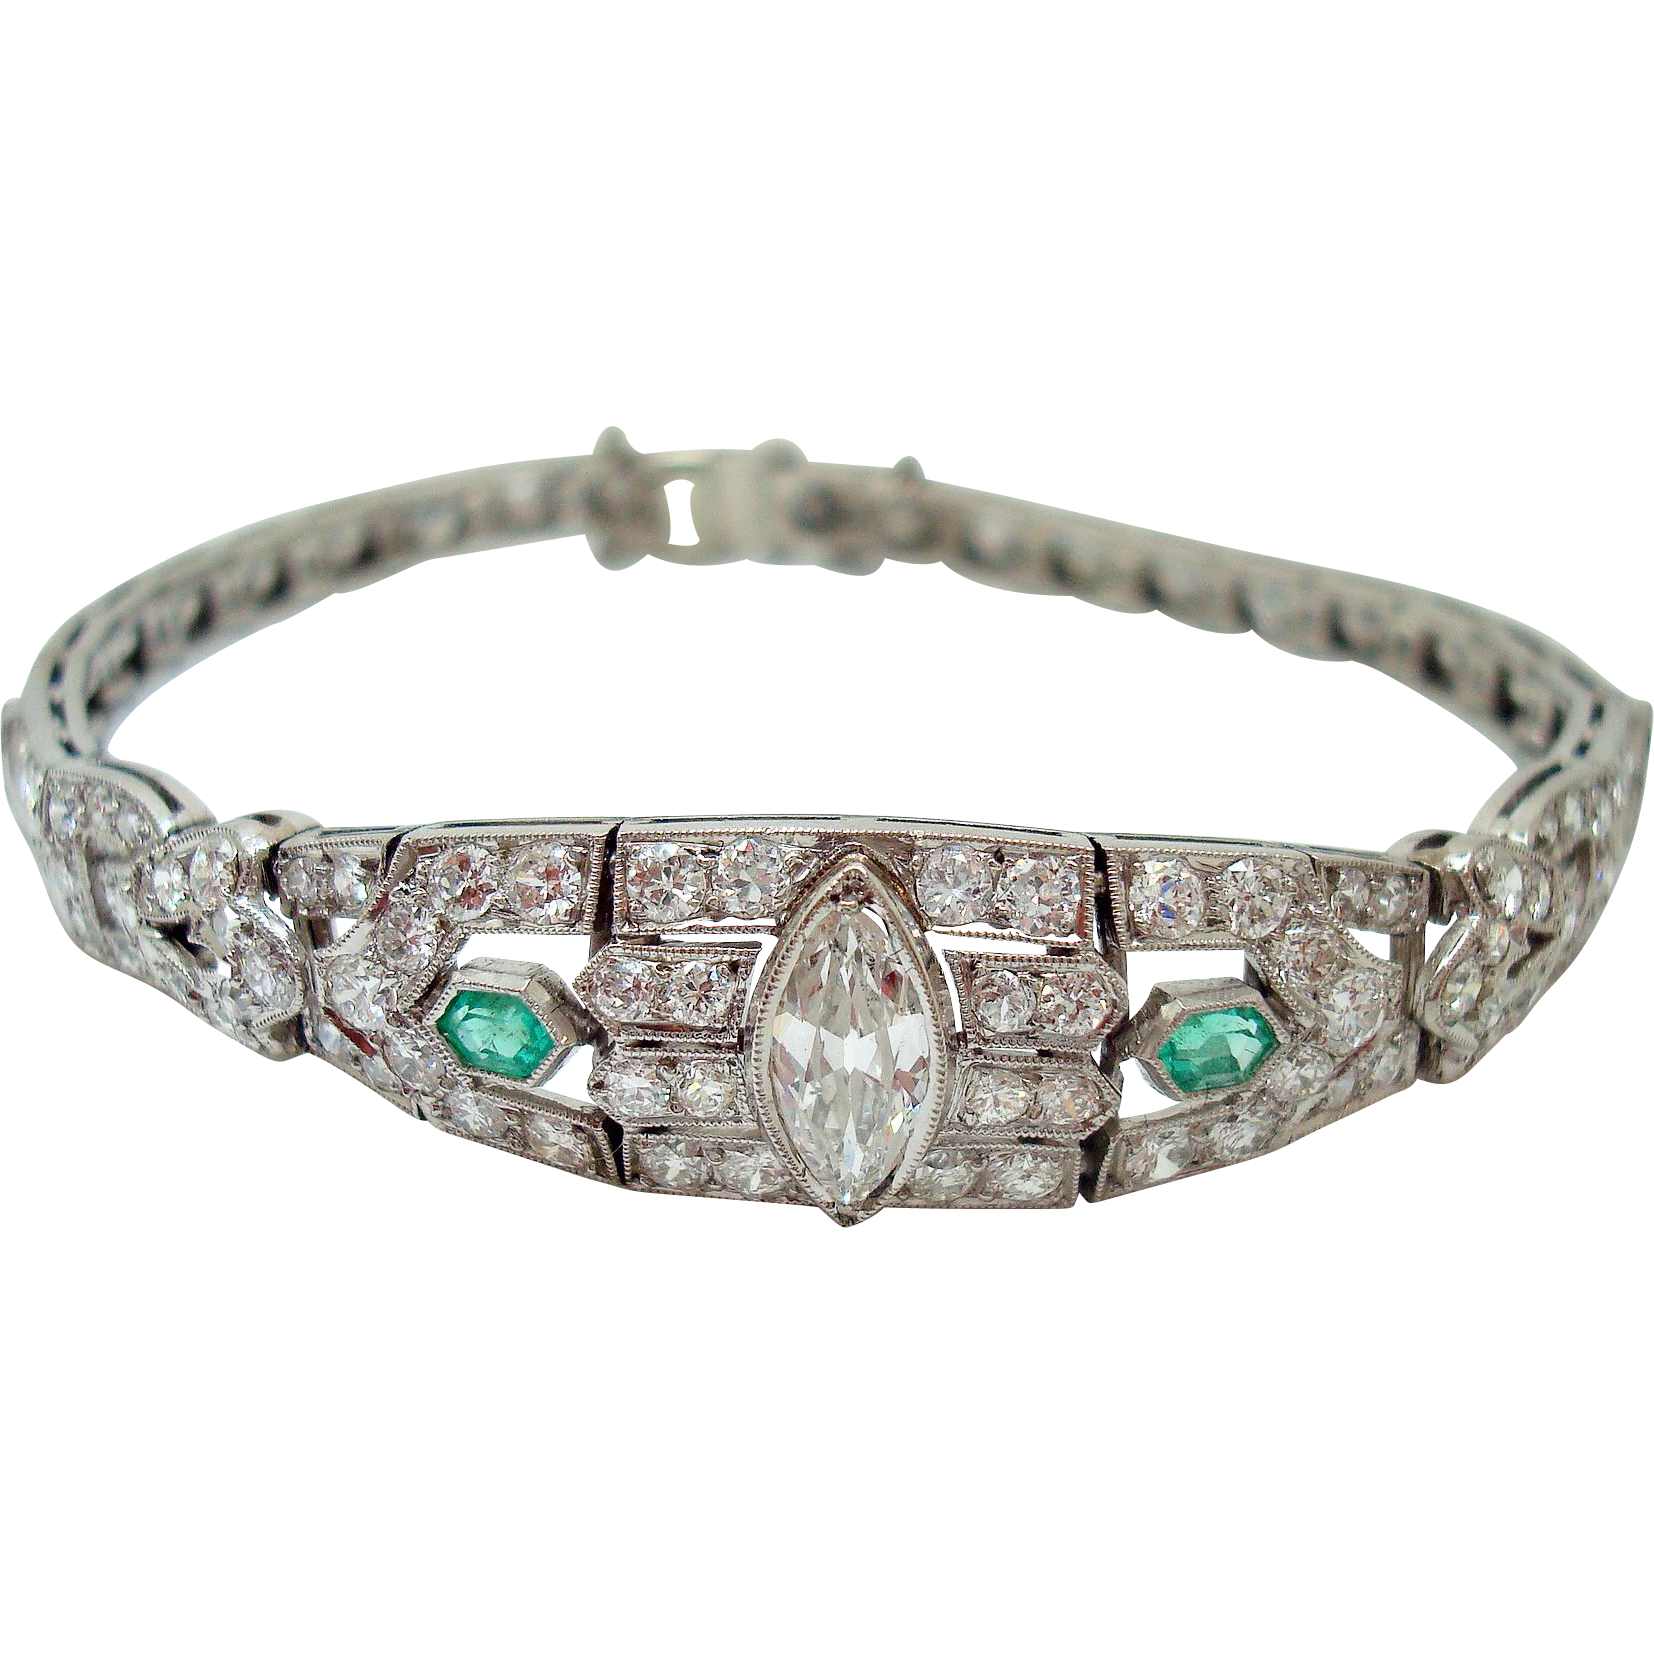 Platinum 4 Carat Diamond & Emerald Bracelet